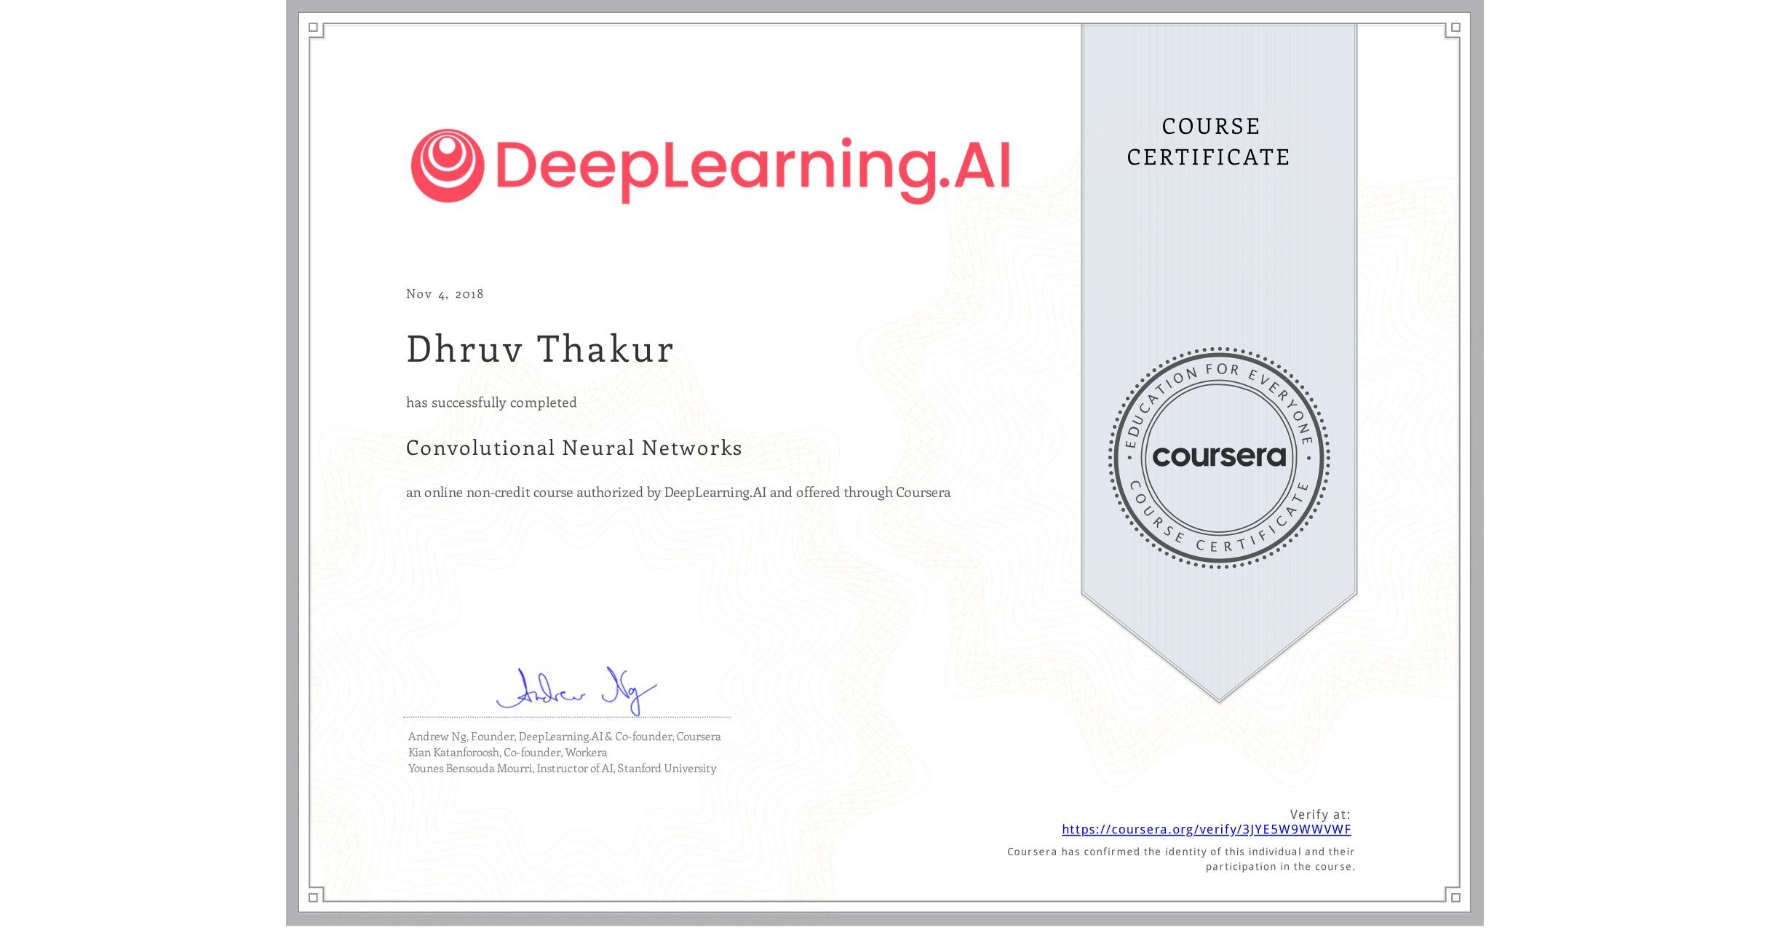 View certificate for Dhruv Thakur, Convolutional Neural Networks, an online non-credit course authorized by DeepLearning.AI and offered through Coursera